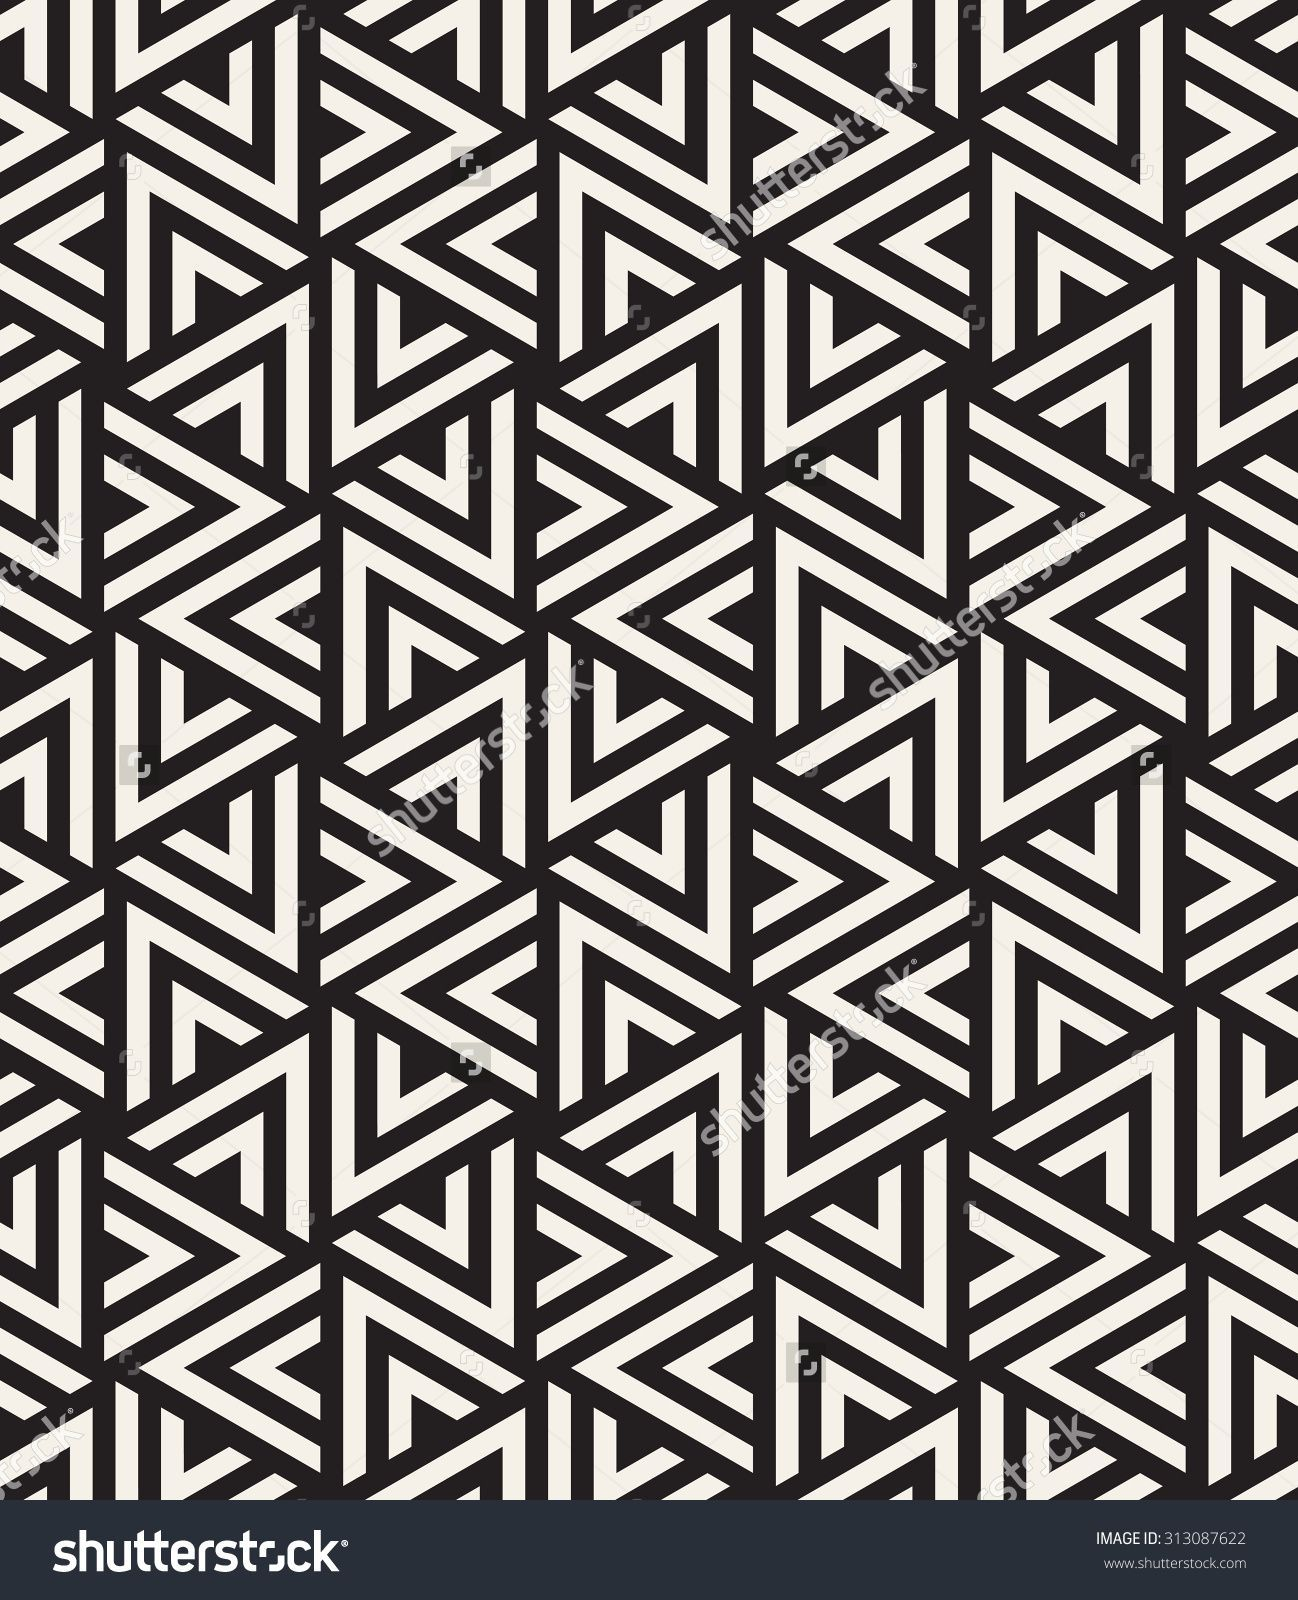 Vector Seamless Pattern Modern Stylish Texture Repeating Geometric Tiles With